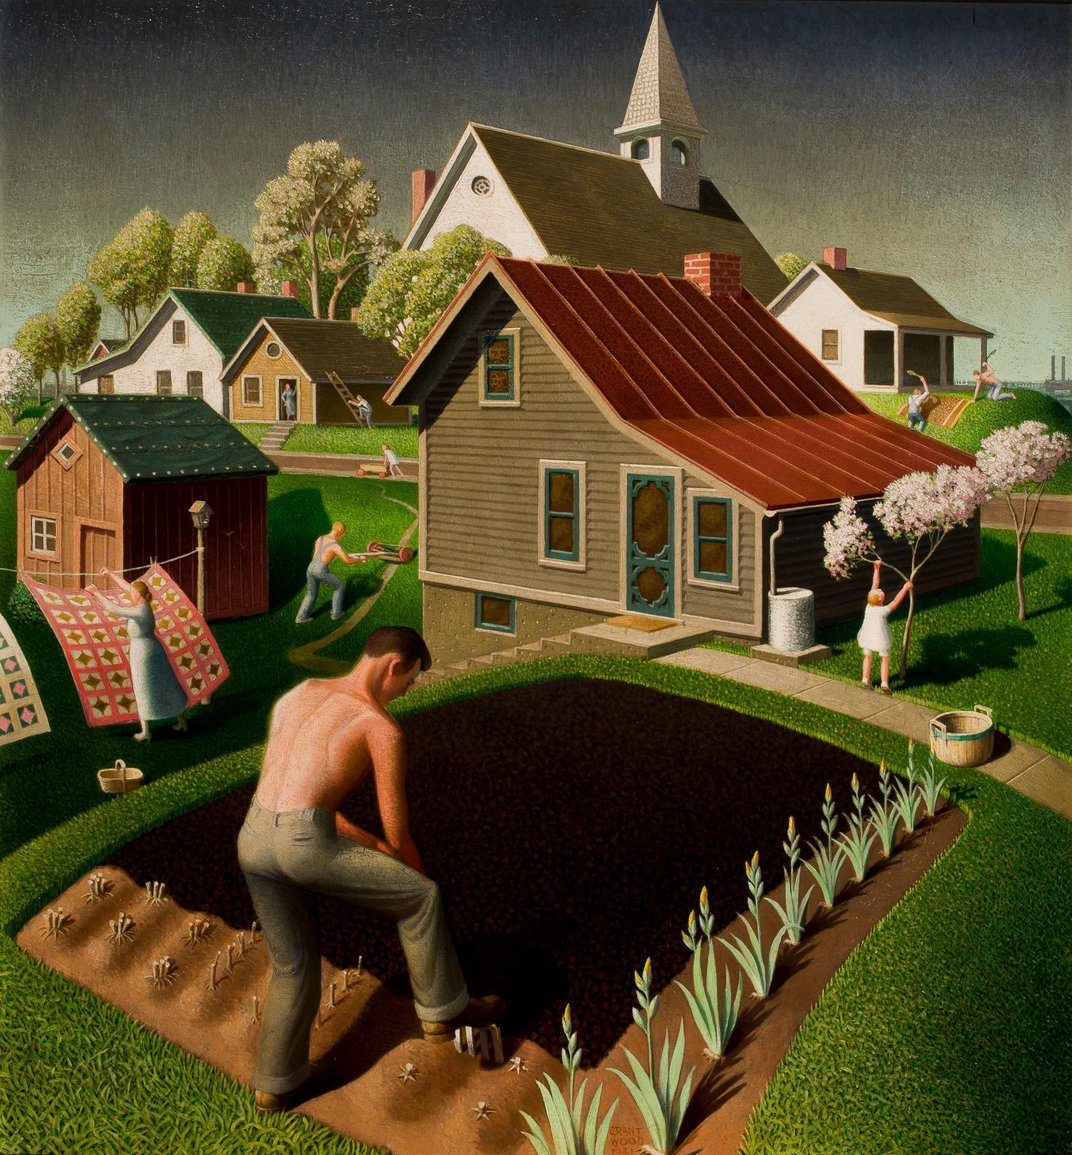 In Search of the Real Grant Wood